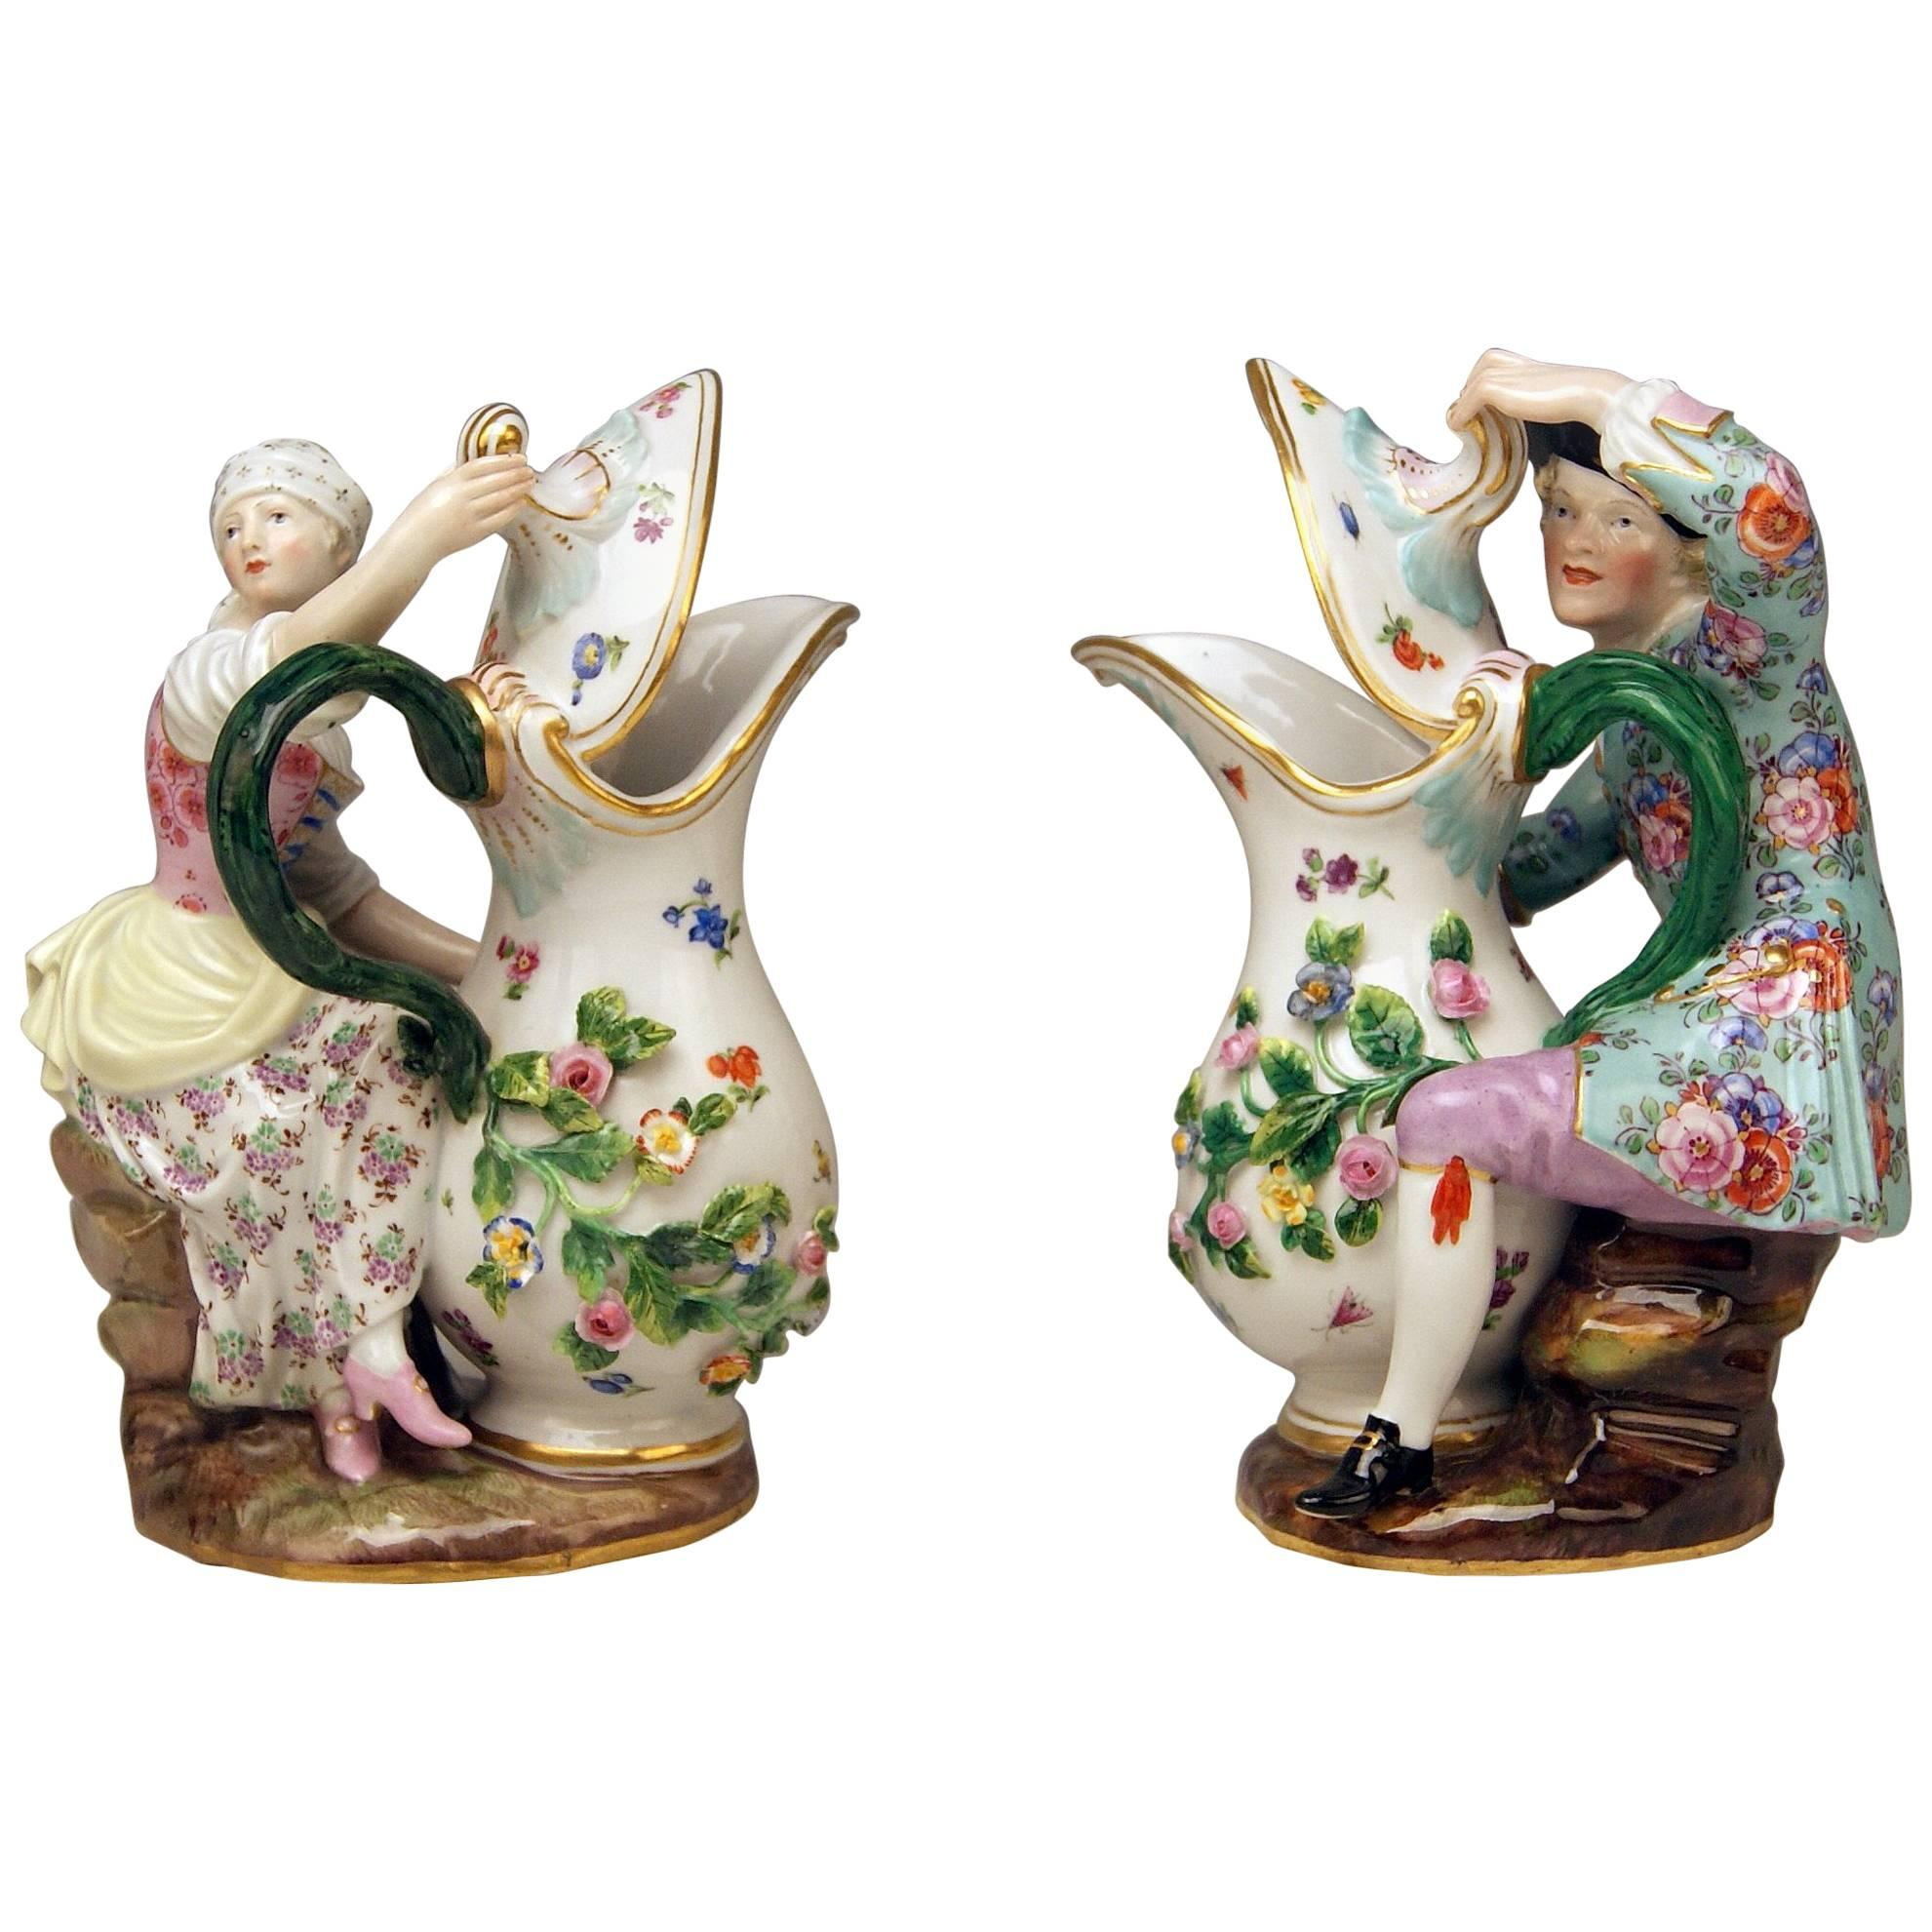 Meissen Pair of Figurines with Jug Pitcher by Eberlein Models 1234 907 made 1850